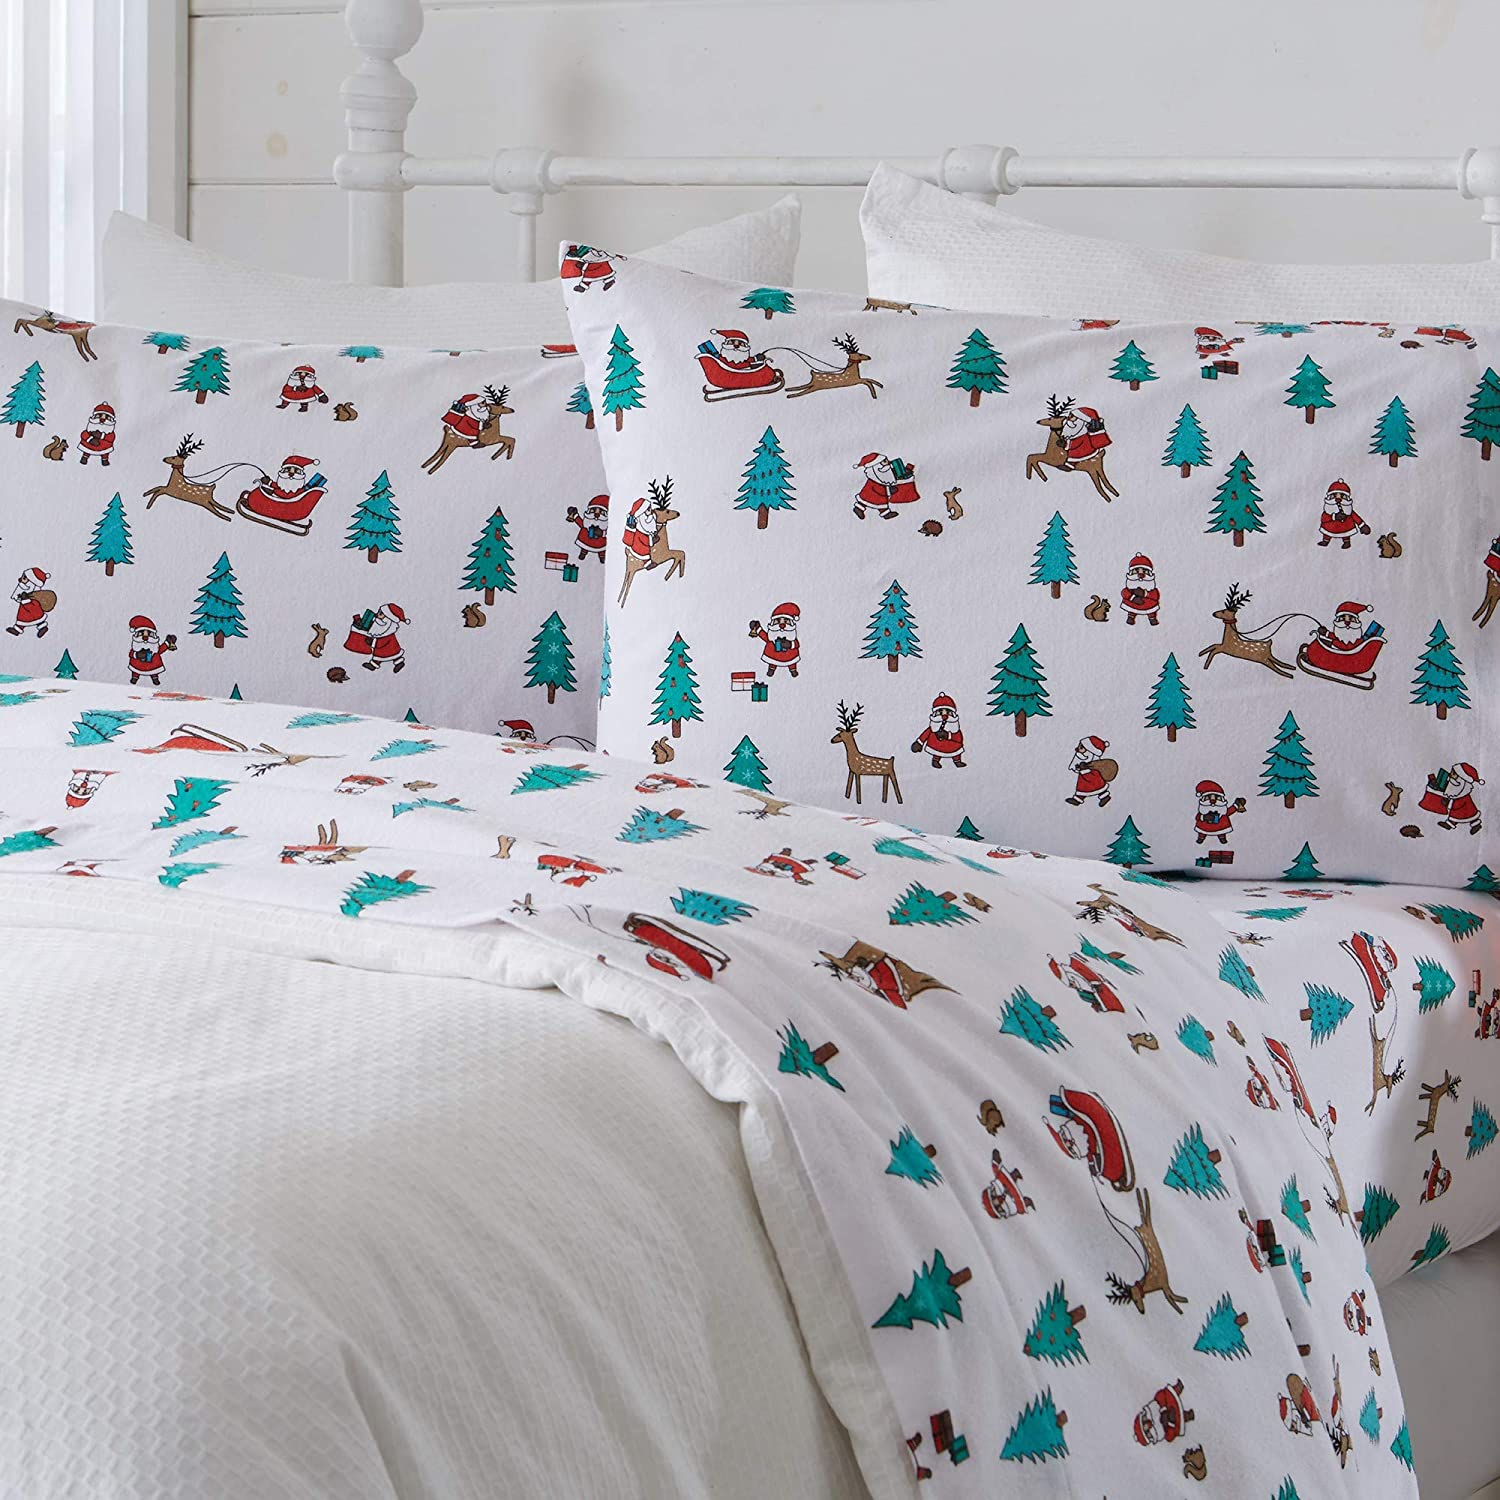 Great Bay Home 3 Piece Extra Soft Holiday Printed 100% Turkish Cotton Flannel Sheet Set. Heavyweight, Warm, Cozy, Luxury Winter Deep Pocket Bed Sheets. Whittaker Collection (Twin XL, Santa)